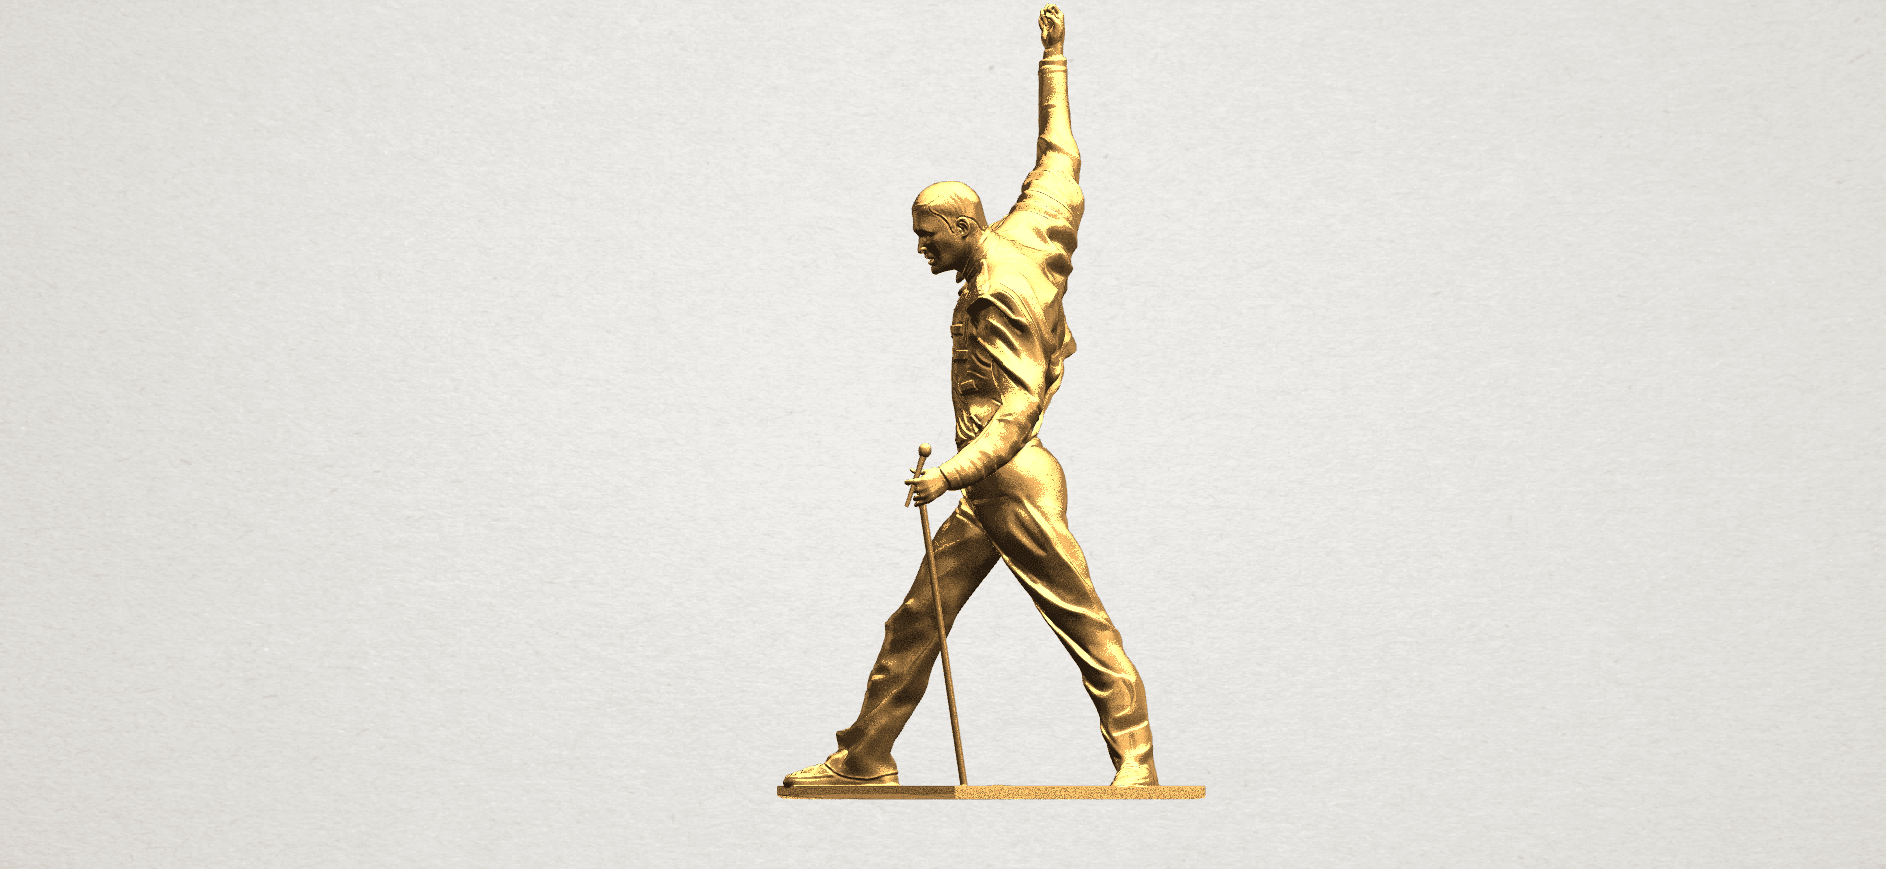 Statue of Freddie Mercury A03.png Download free STL file Statue of Freddie Mercury • 3D printable template, GeorgesNikkei